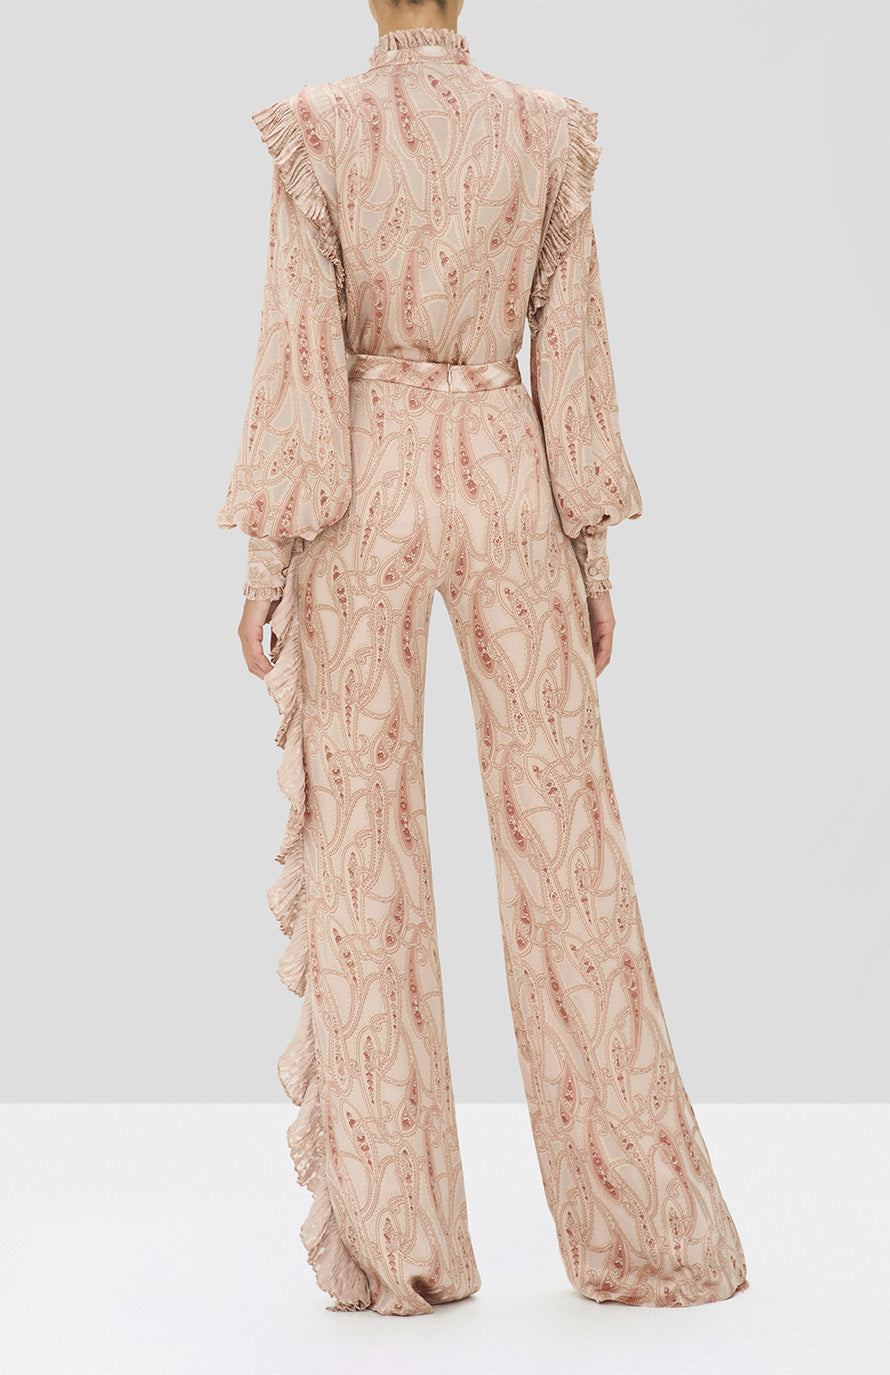 Alexis Eline Top and Izami Pant in Blush Paisley from the Holiday 2019 Ready To Wear Collection - Rear View